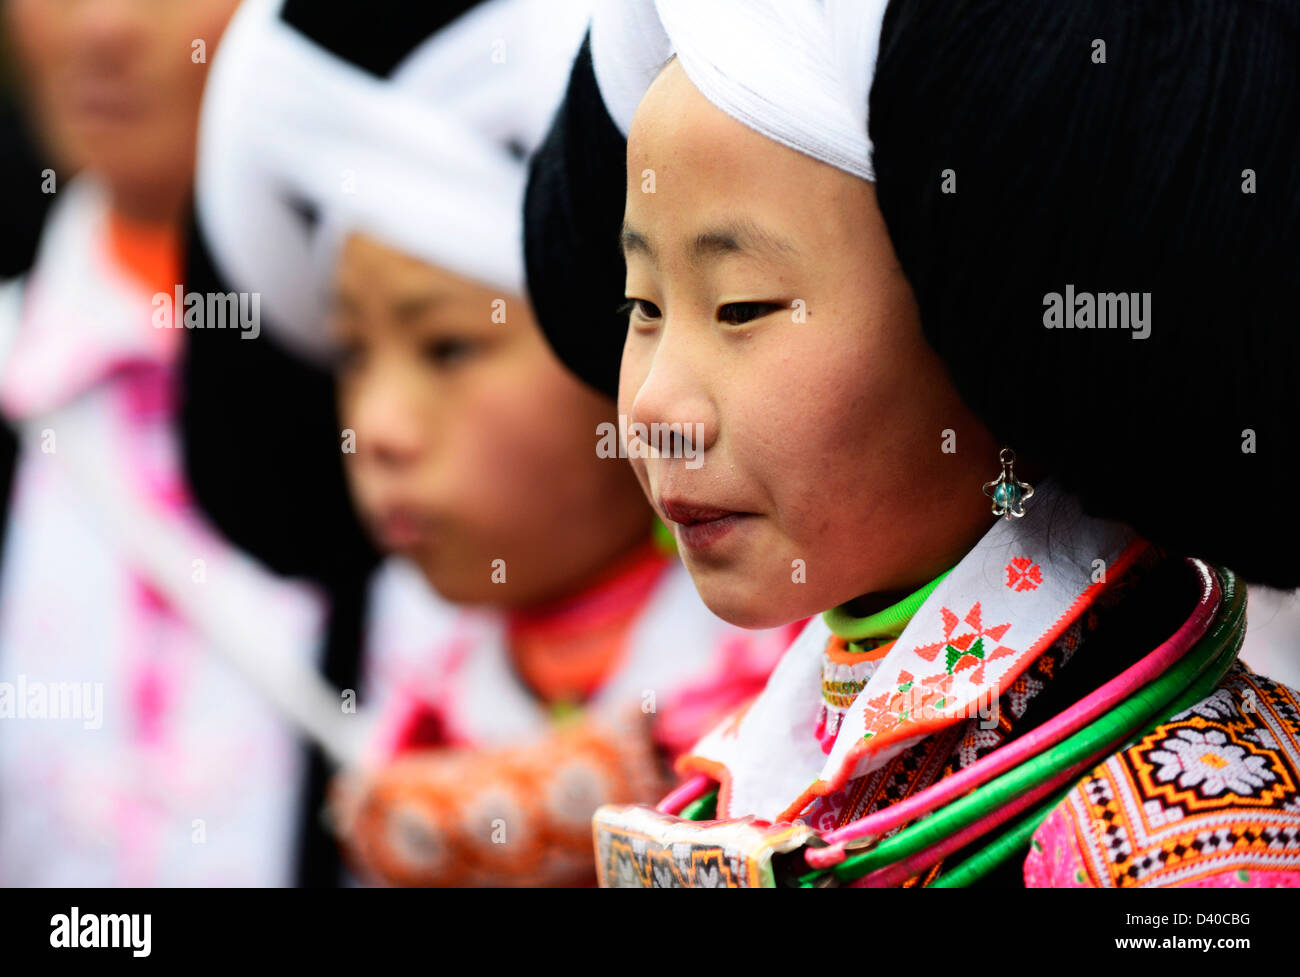 A Long Horn Miao little girl in traditional costumes dancing to celebrate the Tiao Hua festival / spring festival Stock Photo